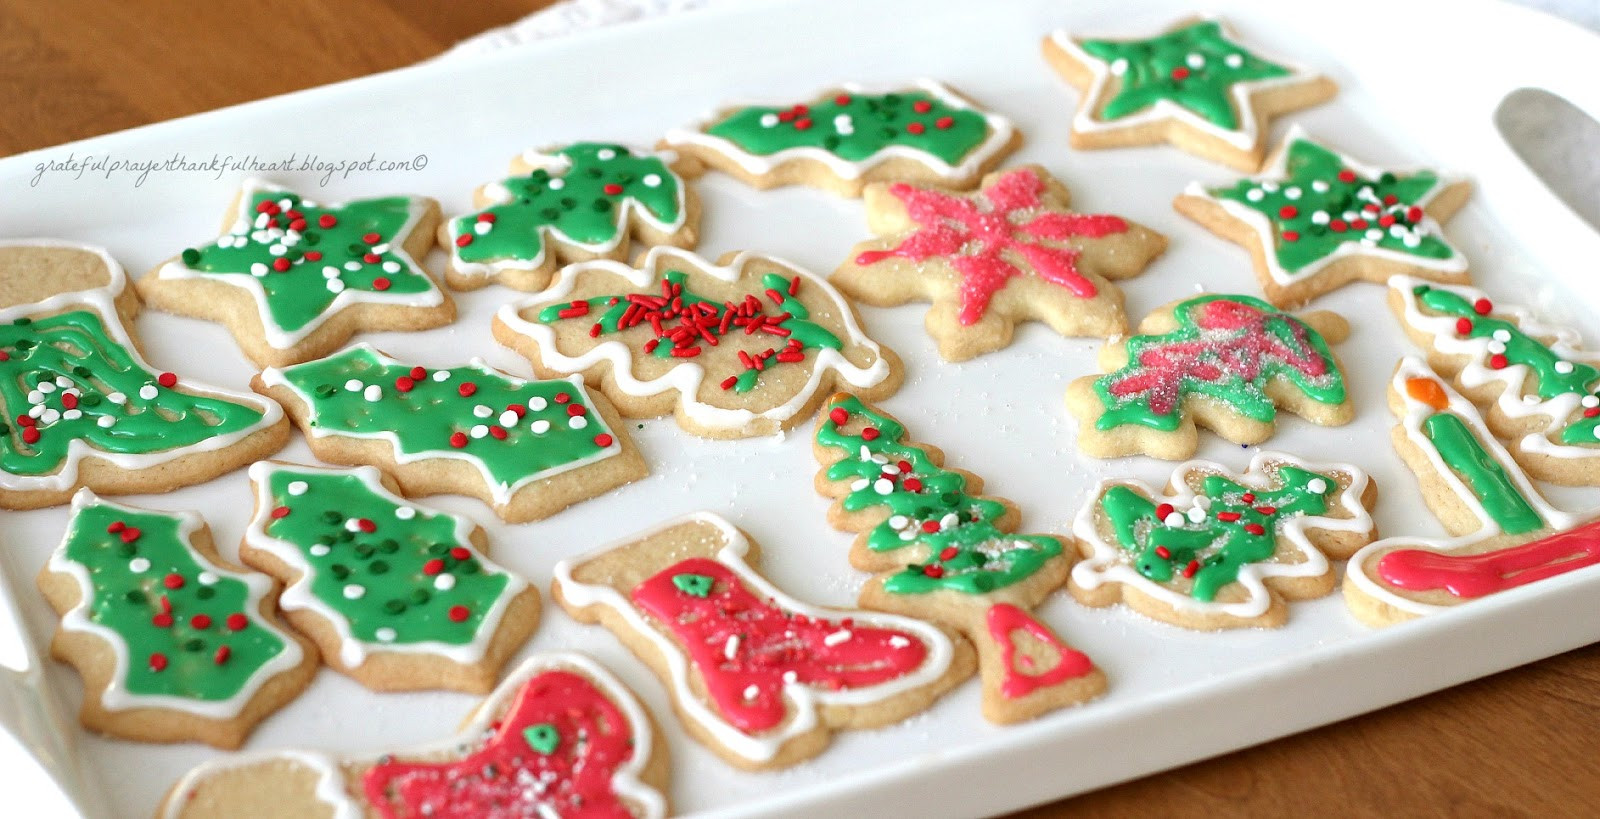 Frosted Christmas Cookies  Frosted Sugar Cookies Grateful Prayer